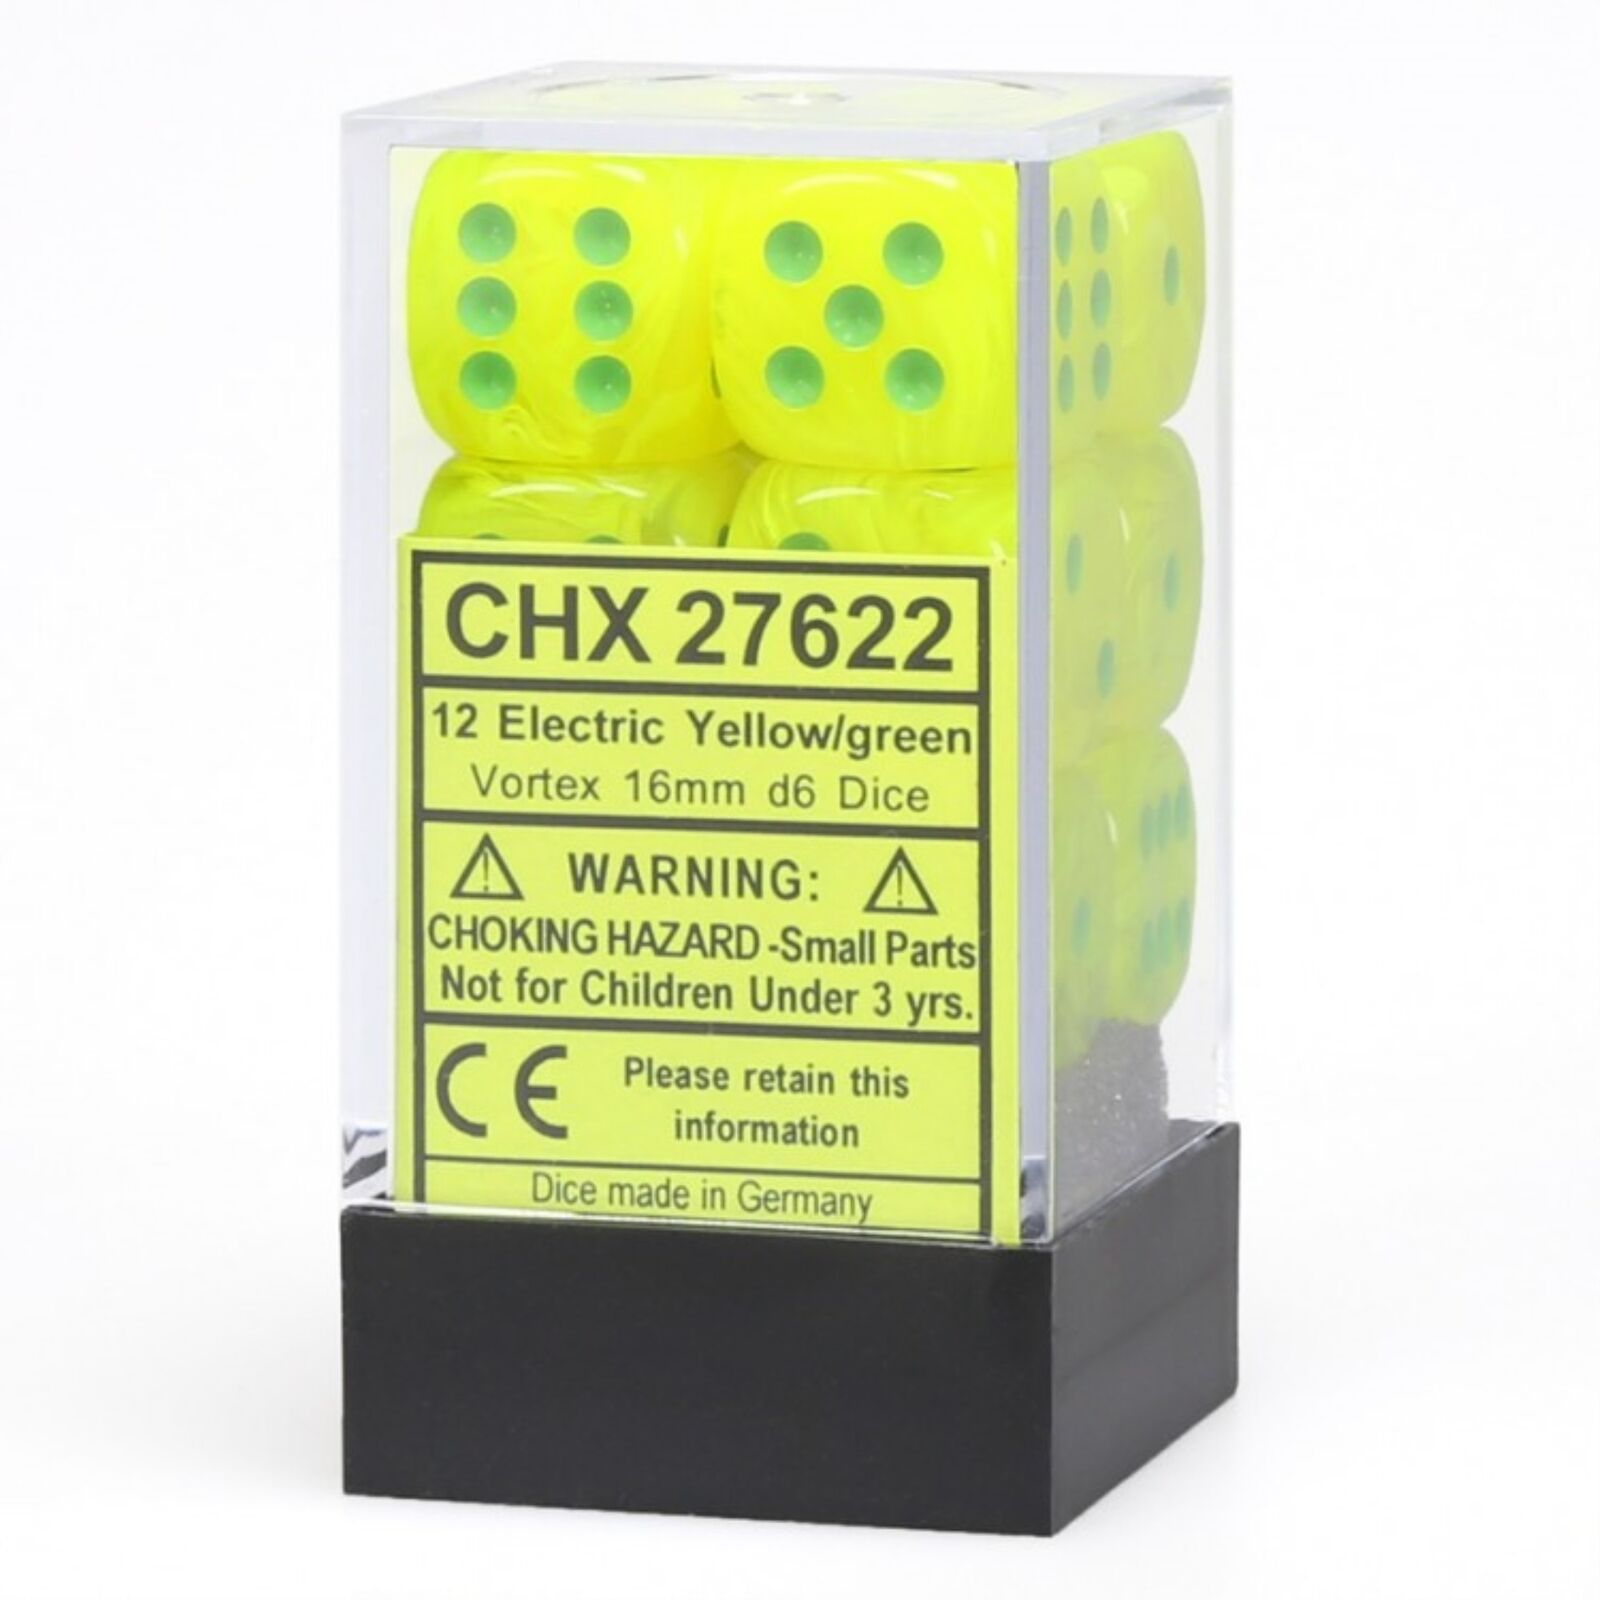 CHESSEX Vortex 12D6 Electric Yellow/Green 16MM (CHX27622) | Eastridge Sports Cards & Games